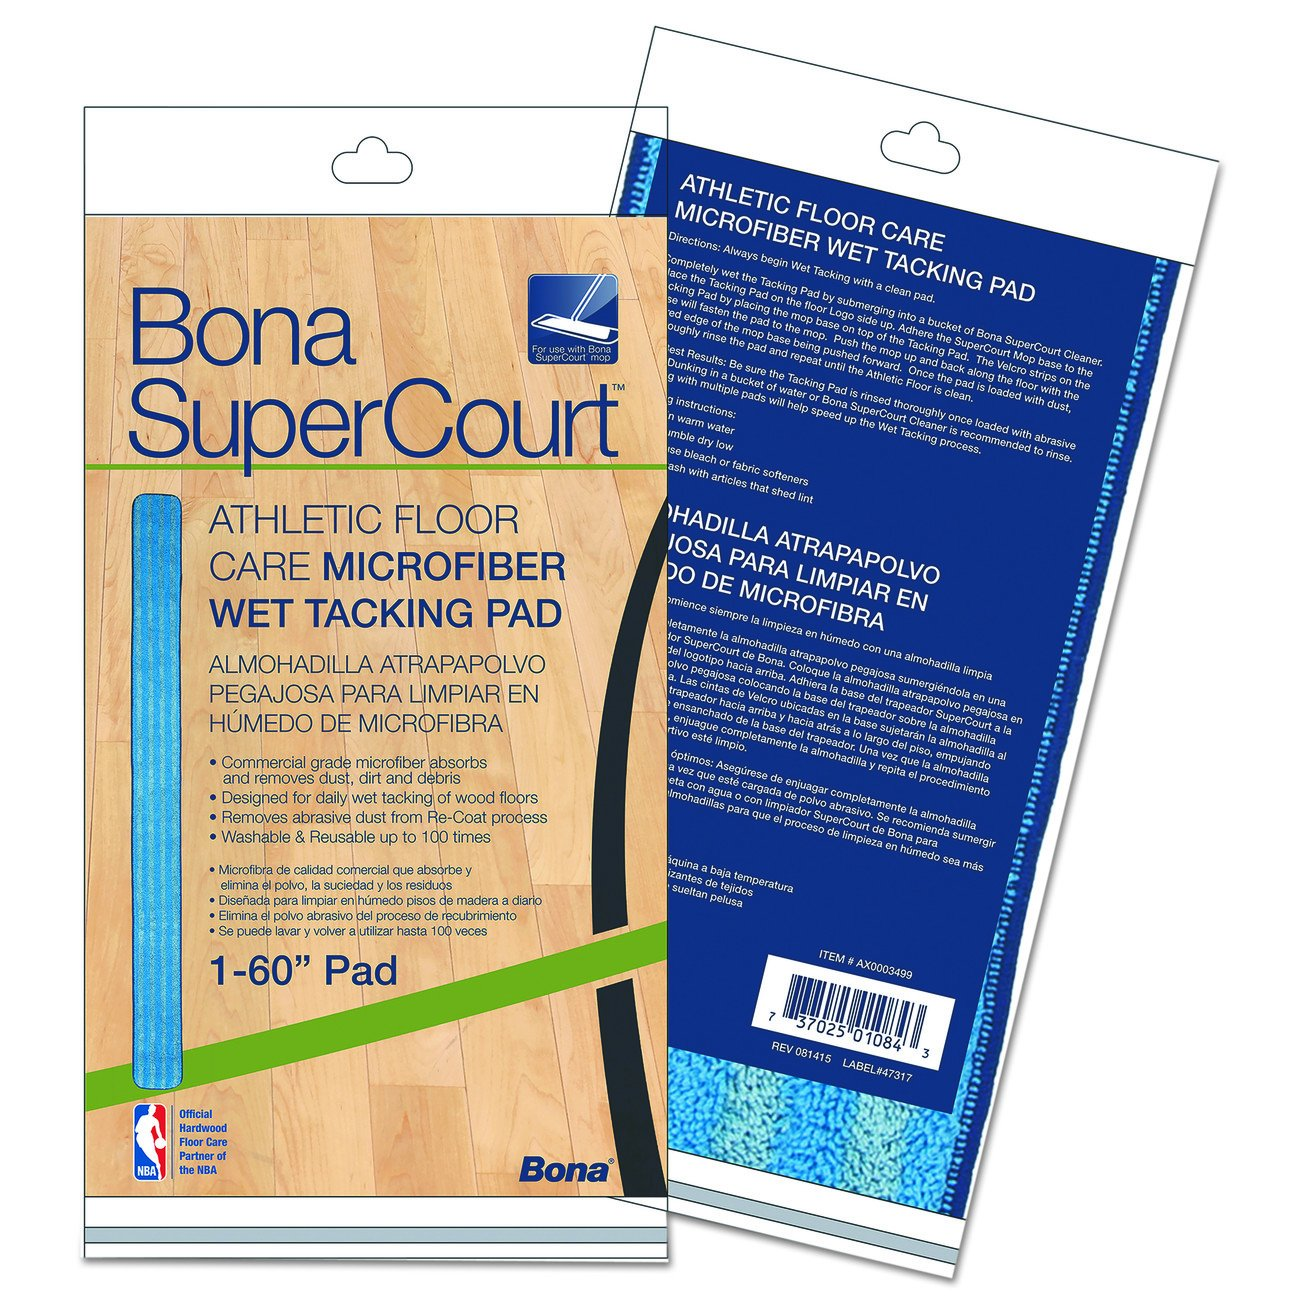 Bona AX0003499 Super Bombing free shipping Court Athletic Care Ta Wet Microfiber It is very popular Floor